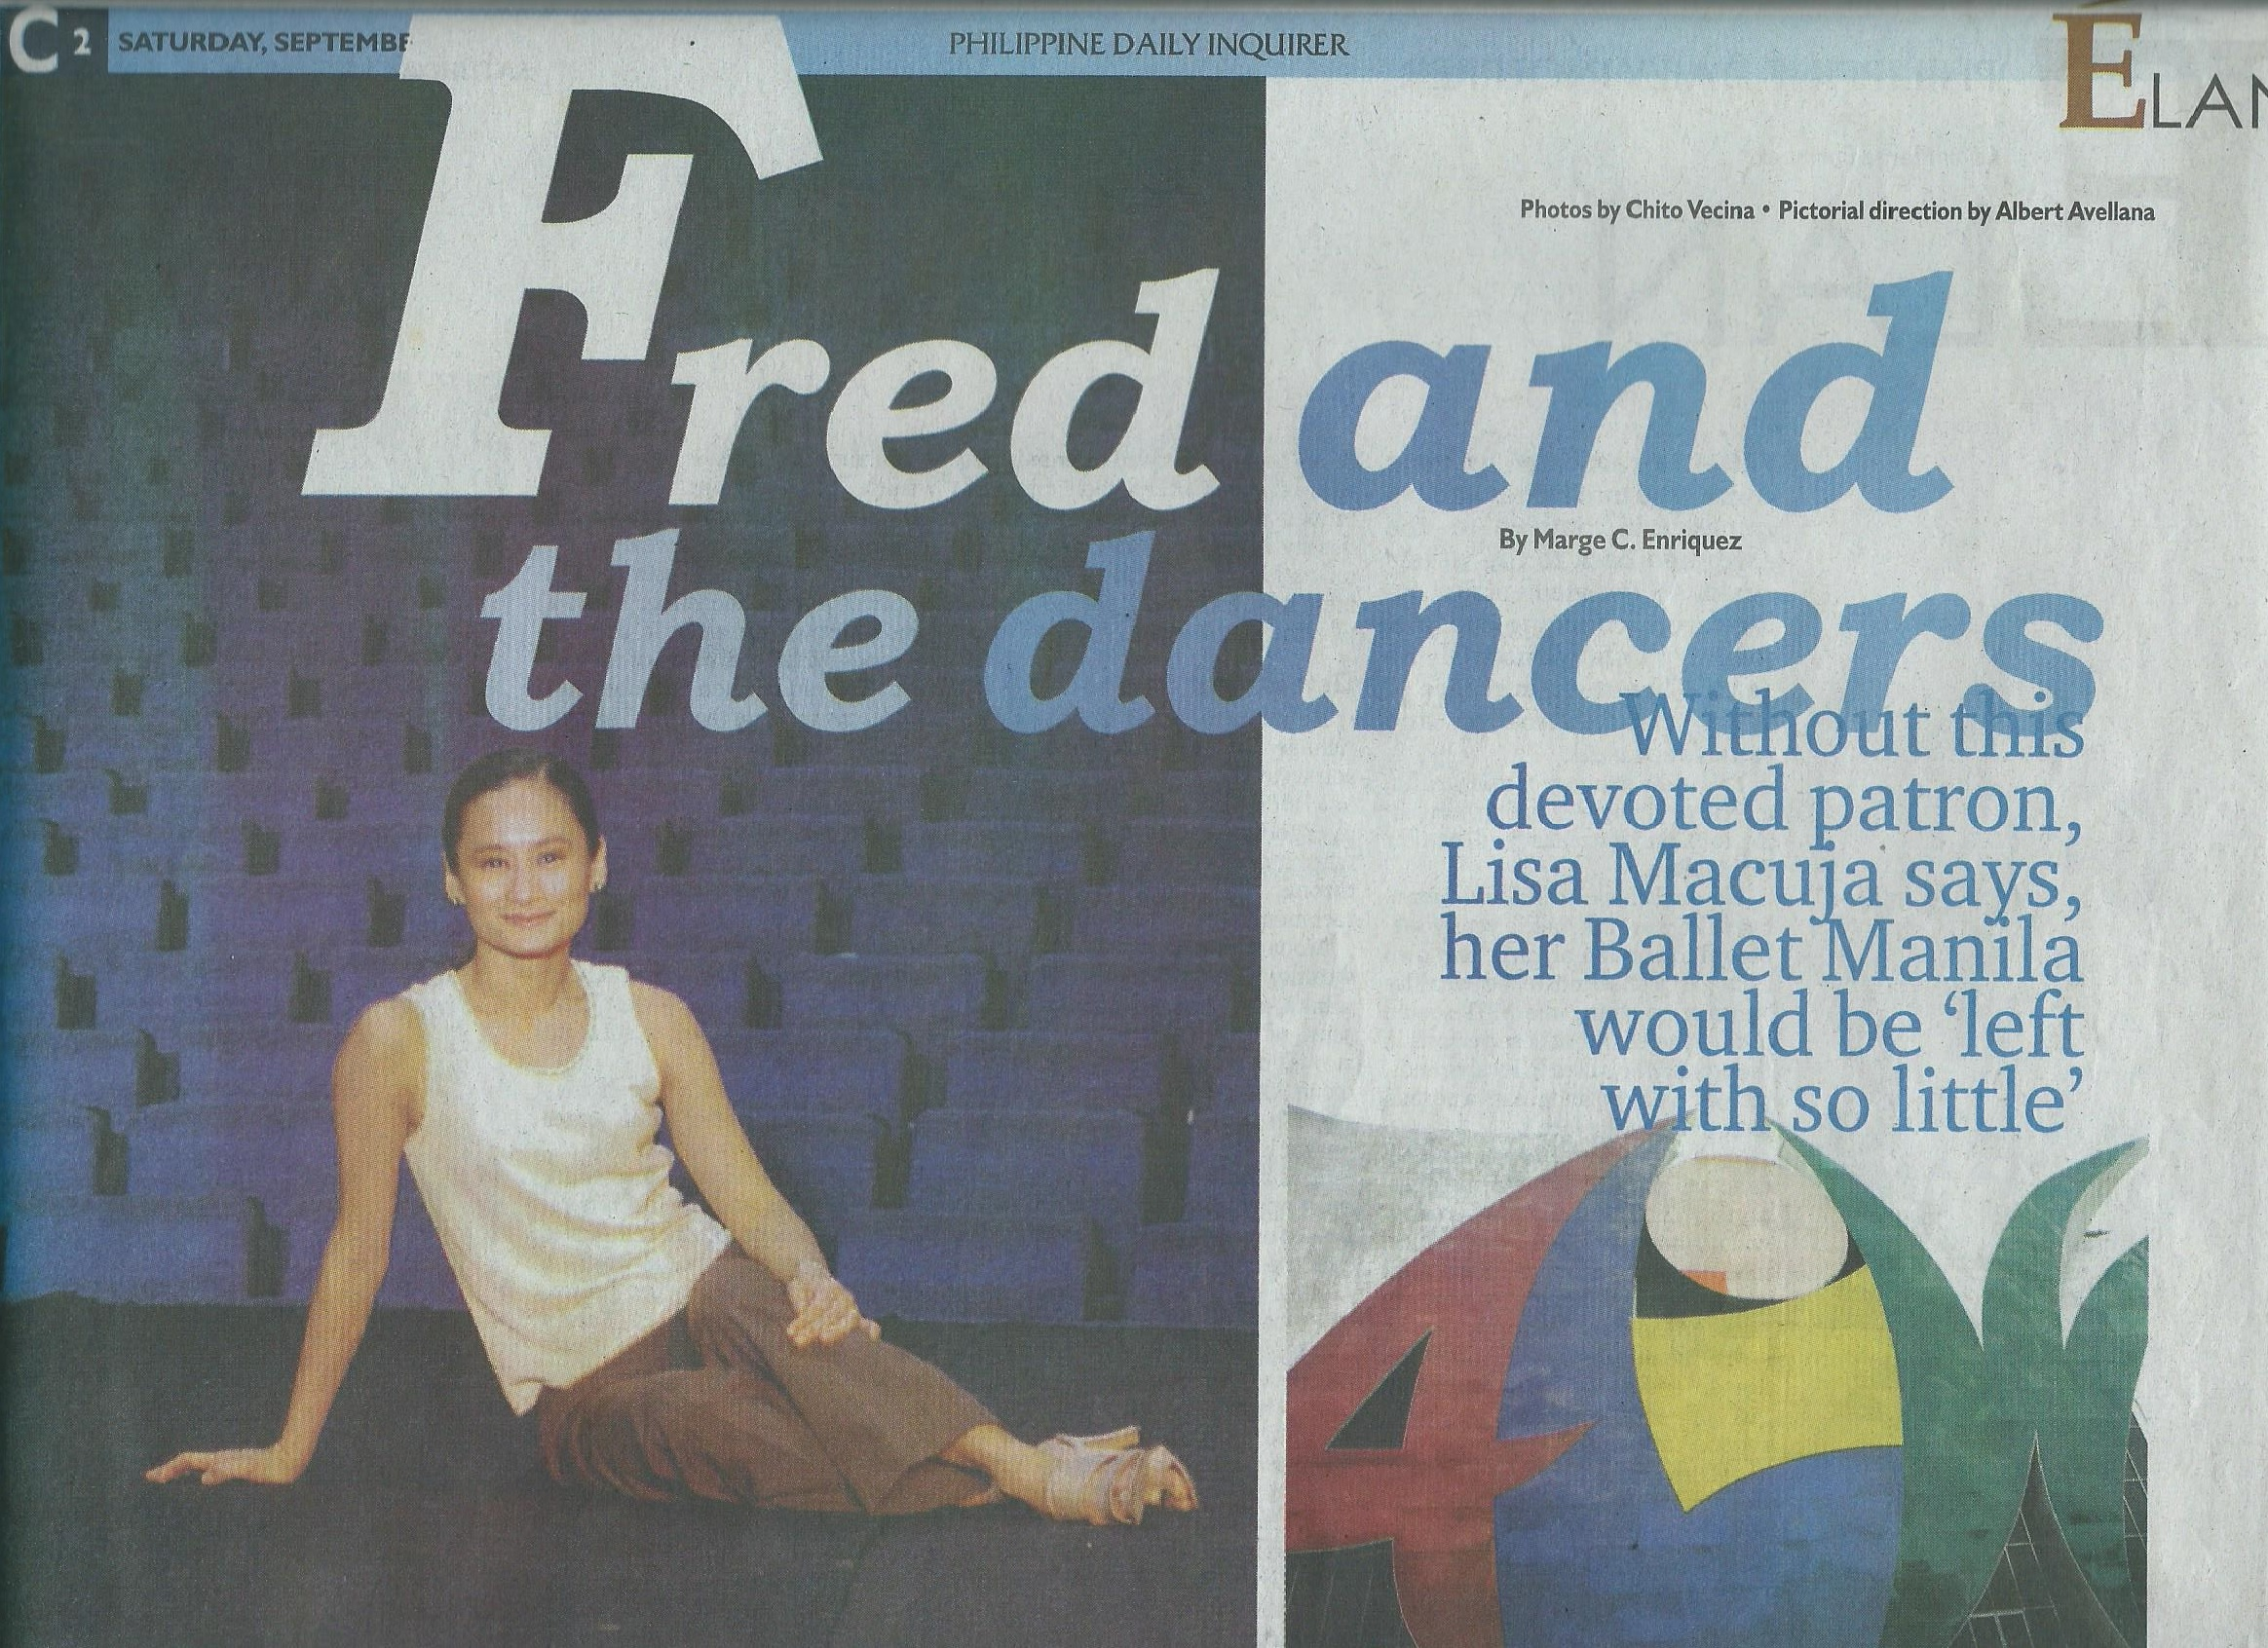 A feature in the  Philippine Daily Inquirer  in 2002 relates the various ways Fred has supported Lisa and Ballet Manila.